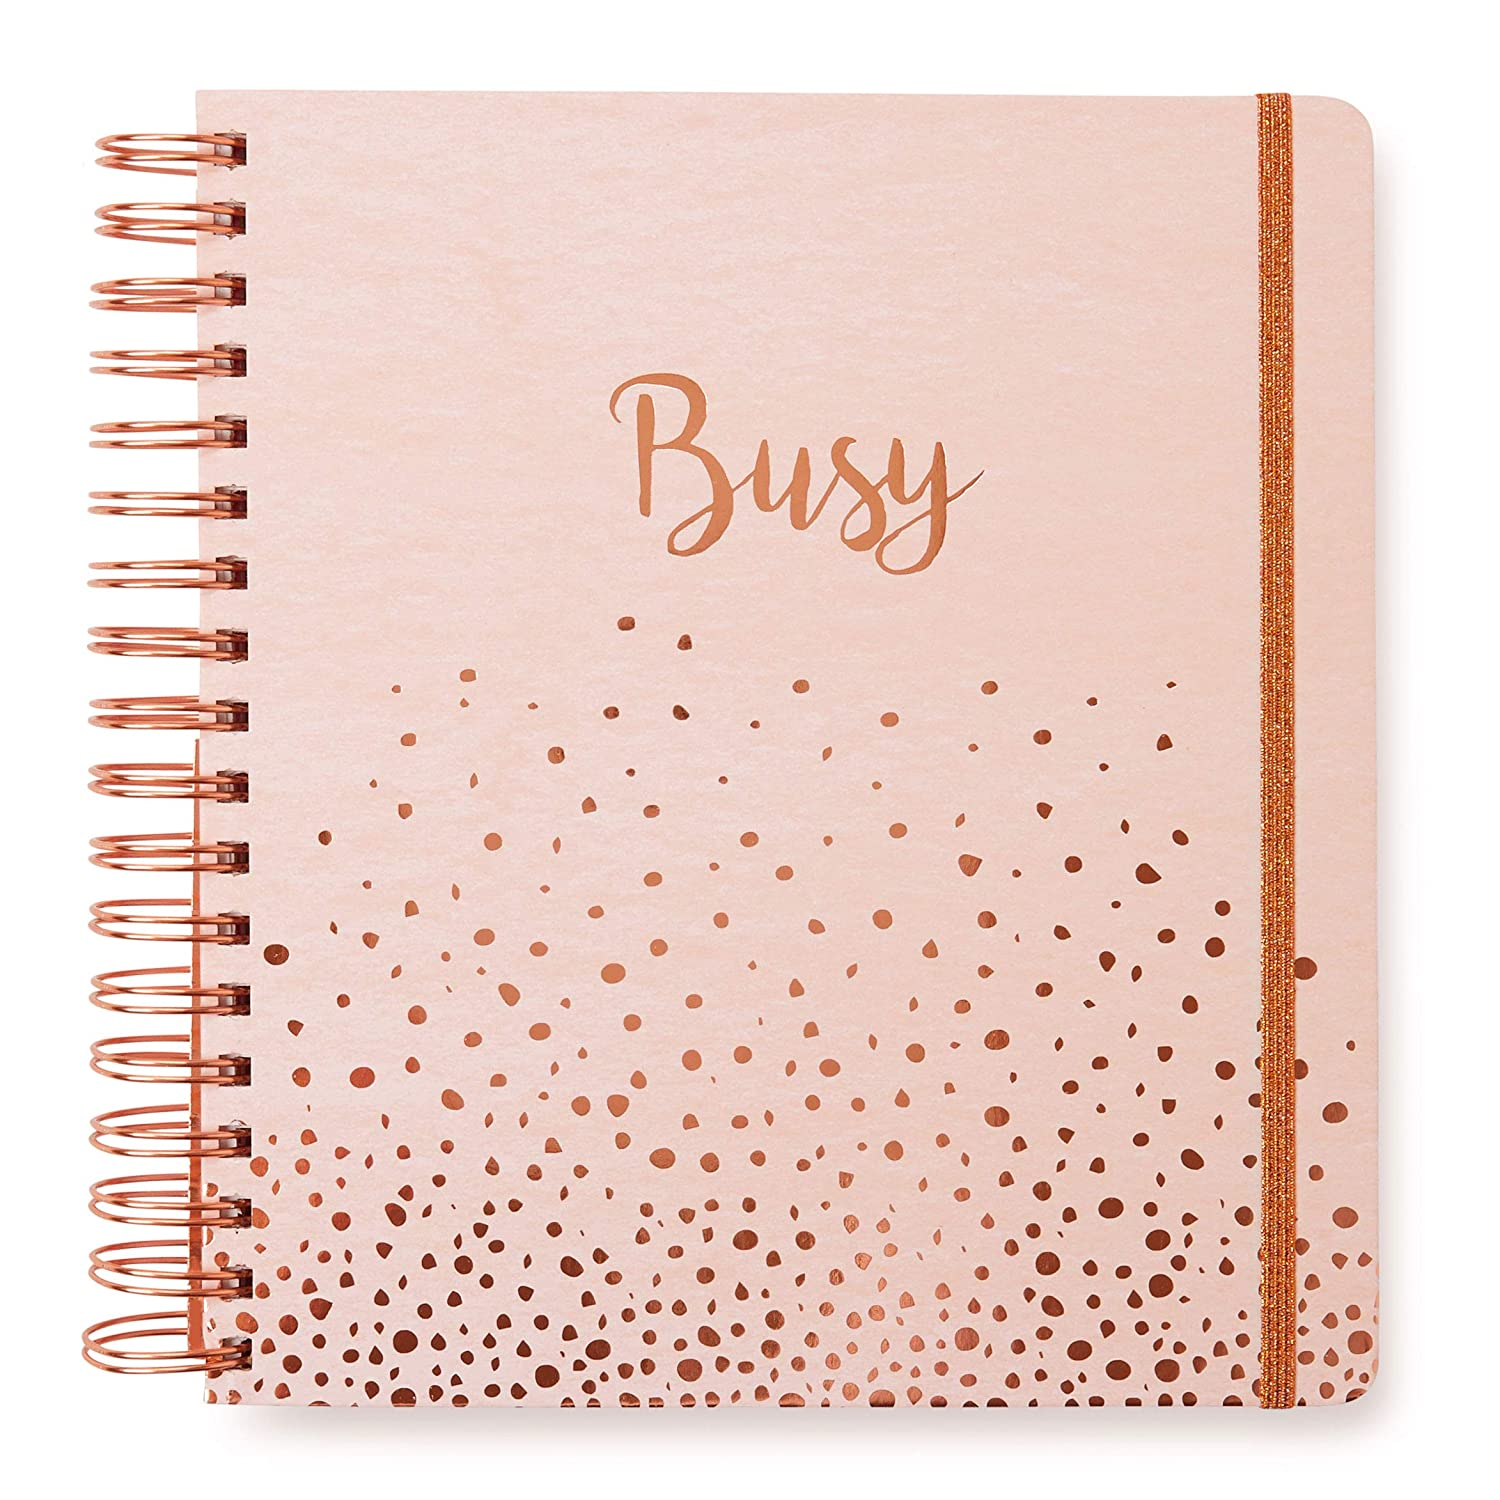 February 2020 Calendar School 11968 Amazon.: 2019 2020 Gold Dots, 17 Month Daily Planners